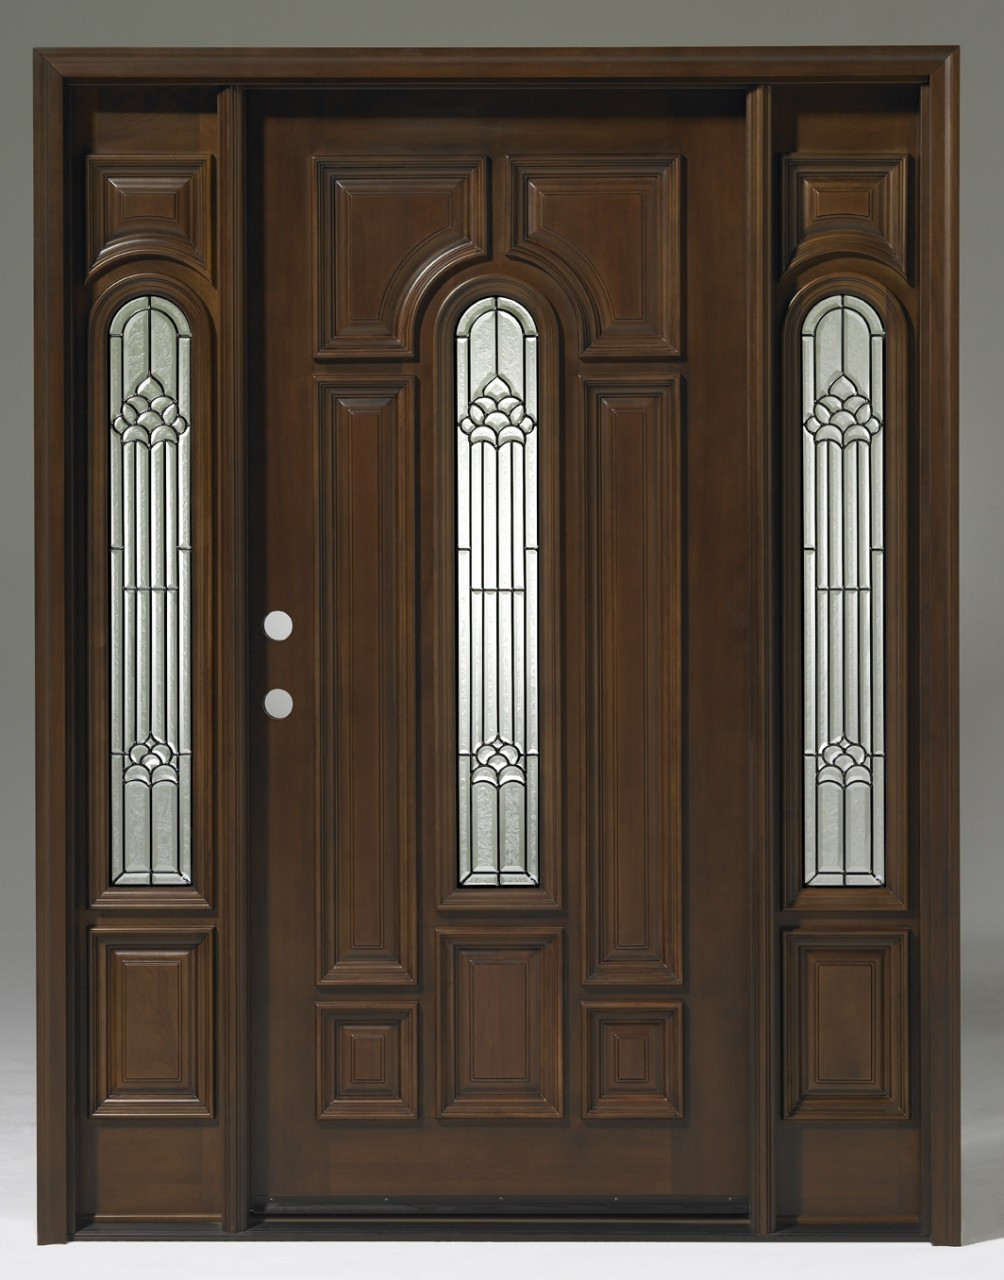 Discount Door Center Prehung And Prefinished Teak Center Arch Entry Door With Sidelights